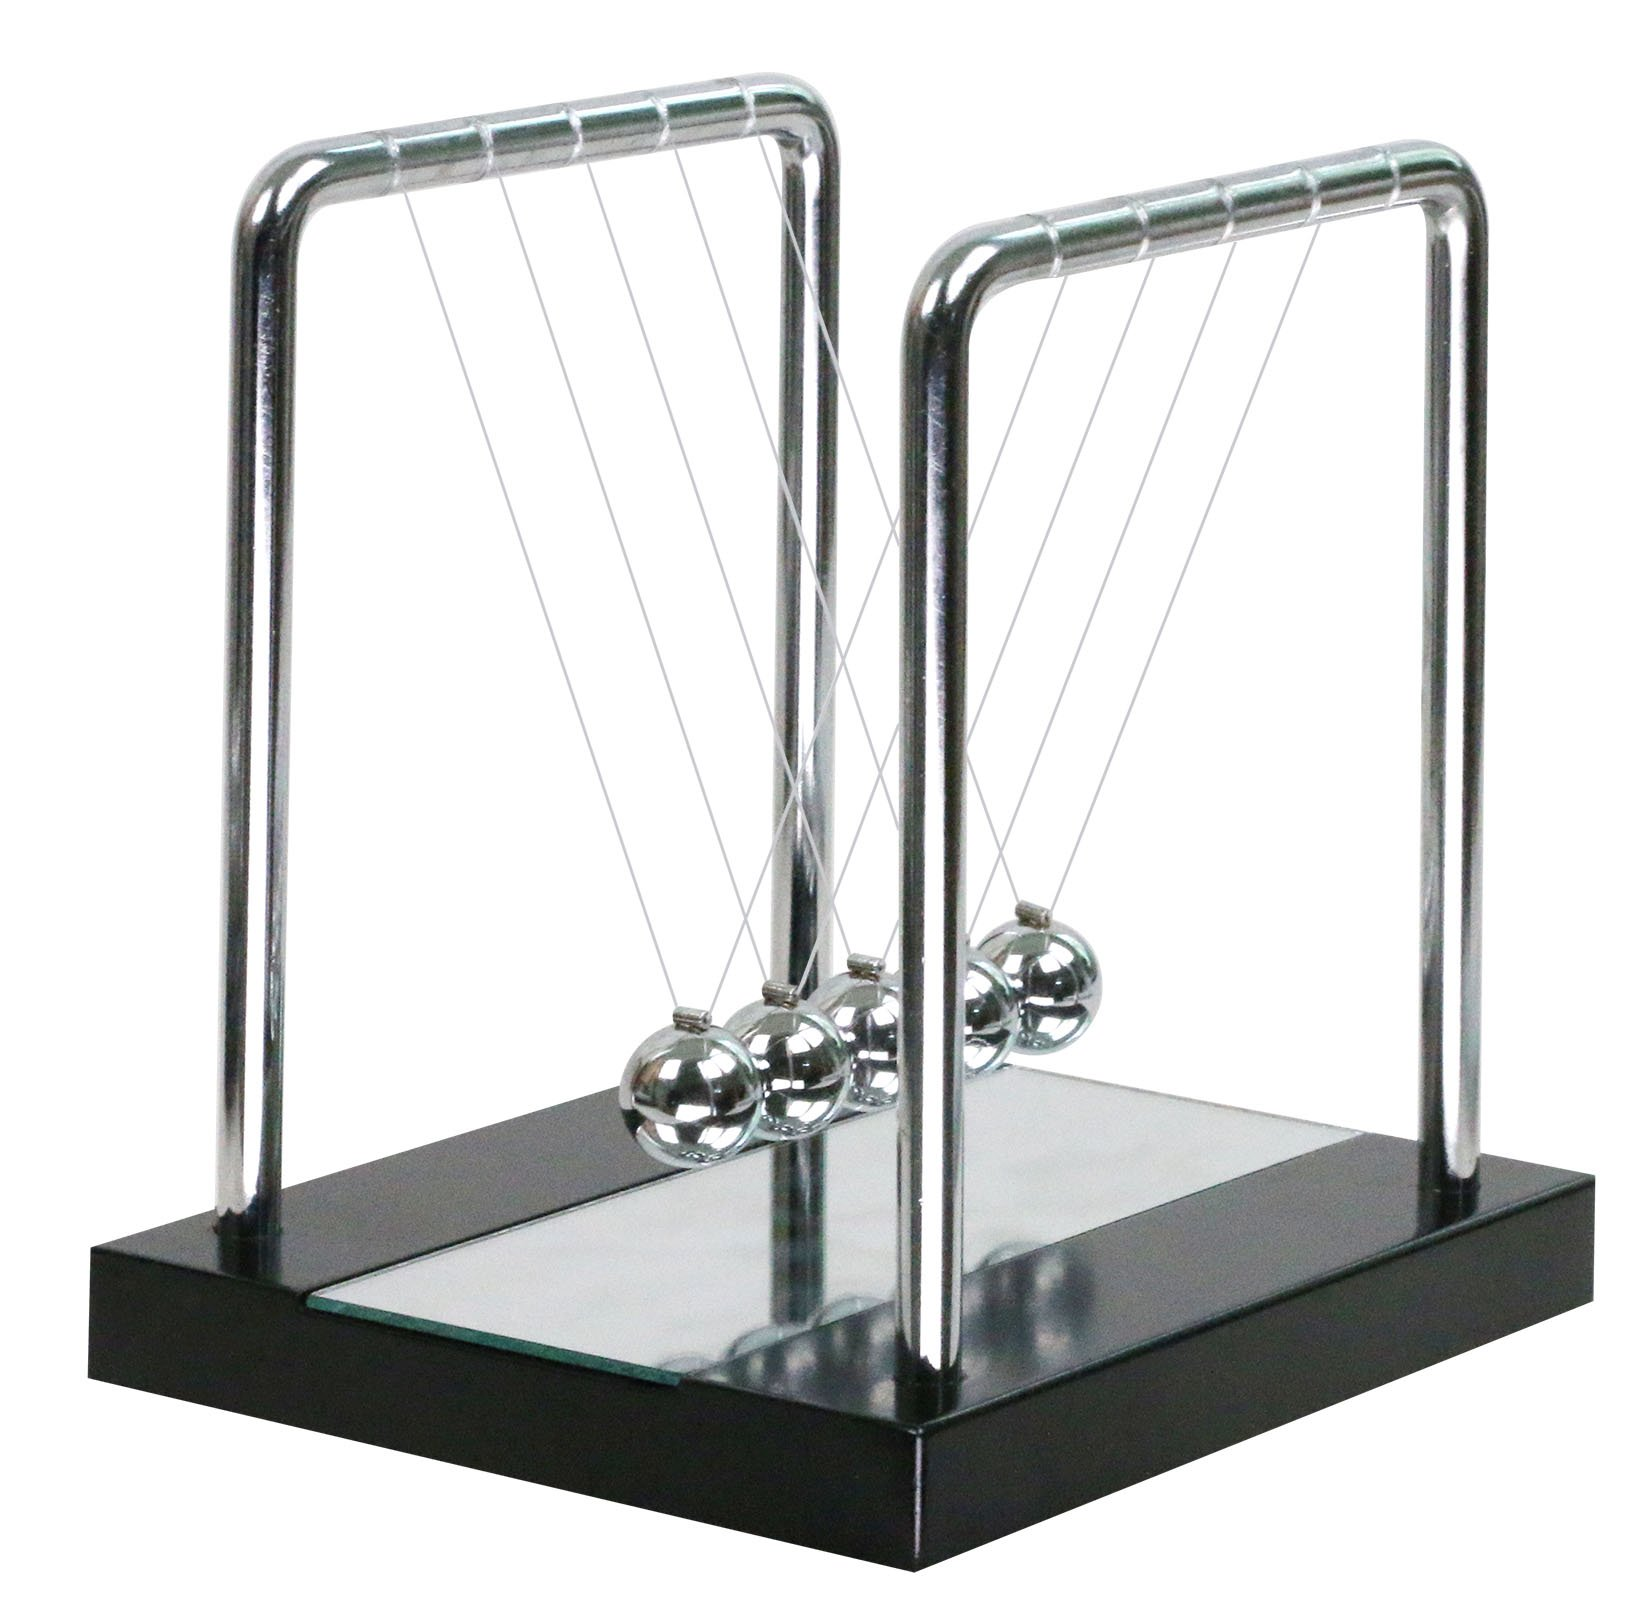 BOJIN Mirror Newton's Cradle Balance Ball Science Kinetic Energy Sculpture - Medium Mirror by BOJIN (Image #1)